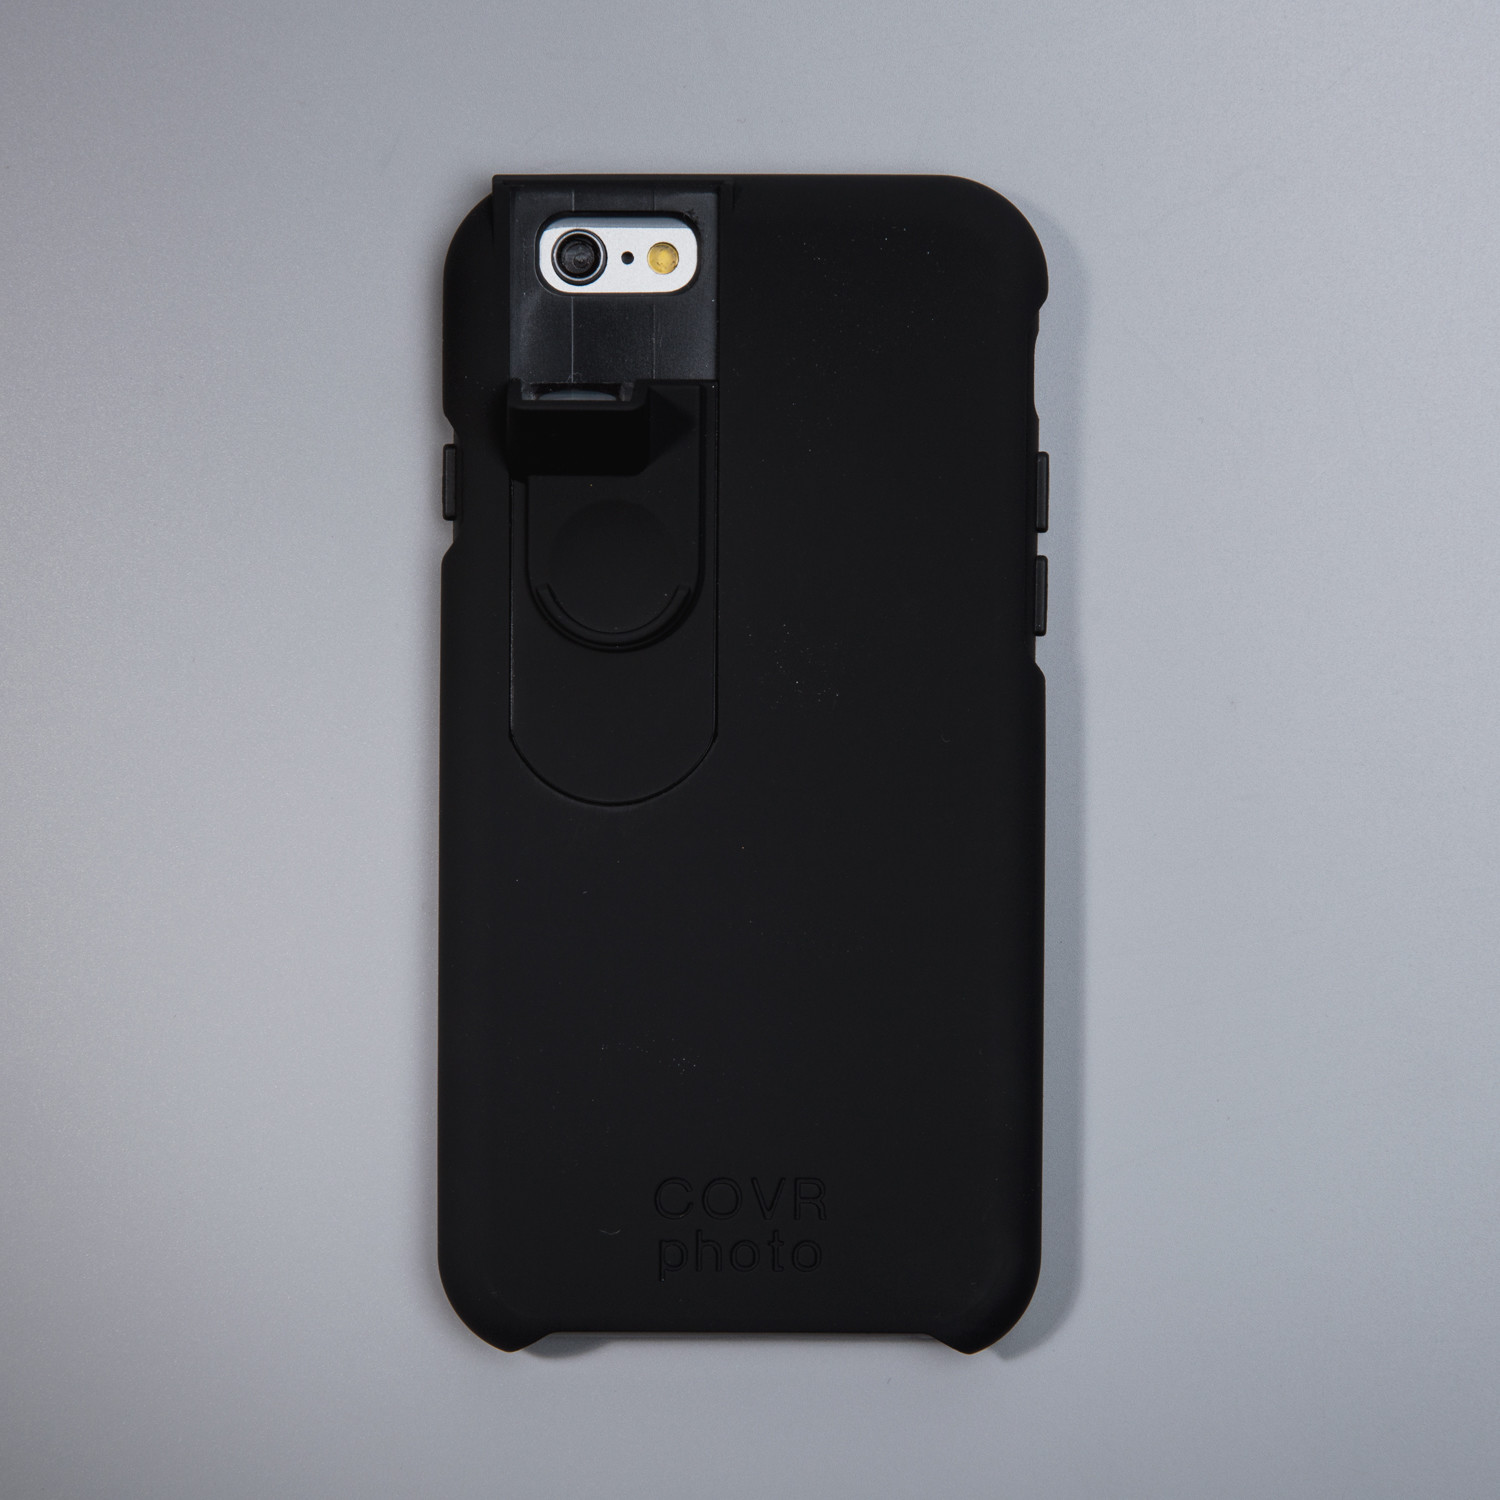 new style 4ede0 d54bb COVR Photo iPhone Case // Black (iPhone 6/6s) - Covr Photo - Touch ...